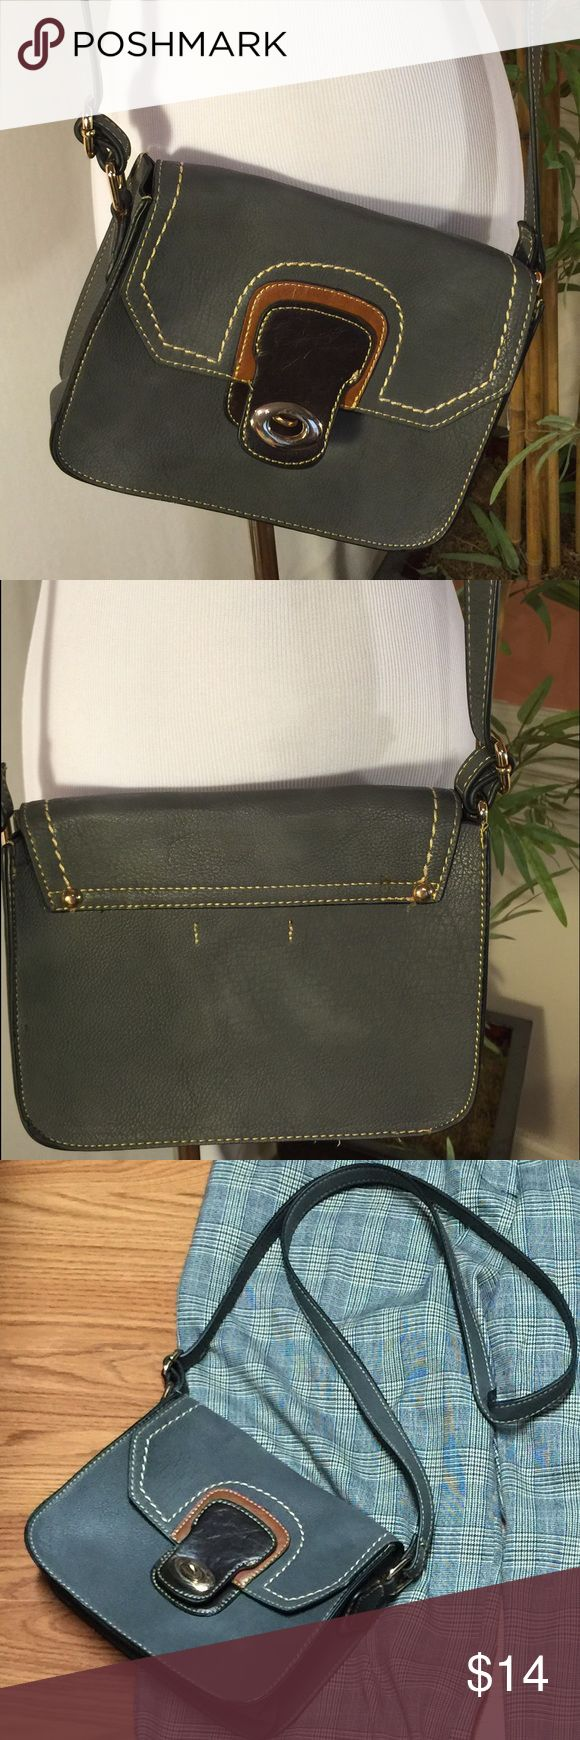 Wilson's Leather  Grey Leather Crossbody Purse This purse is in Excellent Used Condition. I think I only used it once. It's small. Great for a day trip or somewhere you don't want to carry a big bag. Wilsons Leather Bags Crossbody Bags